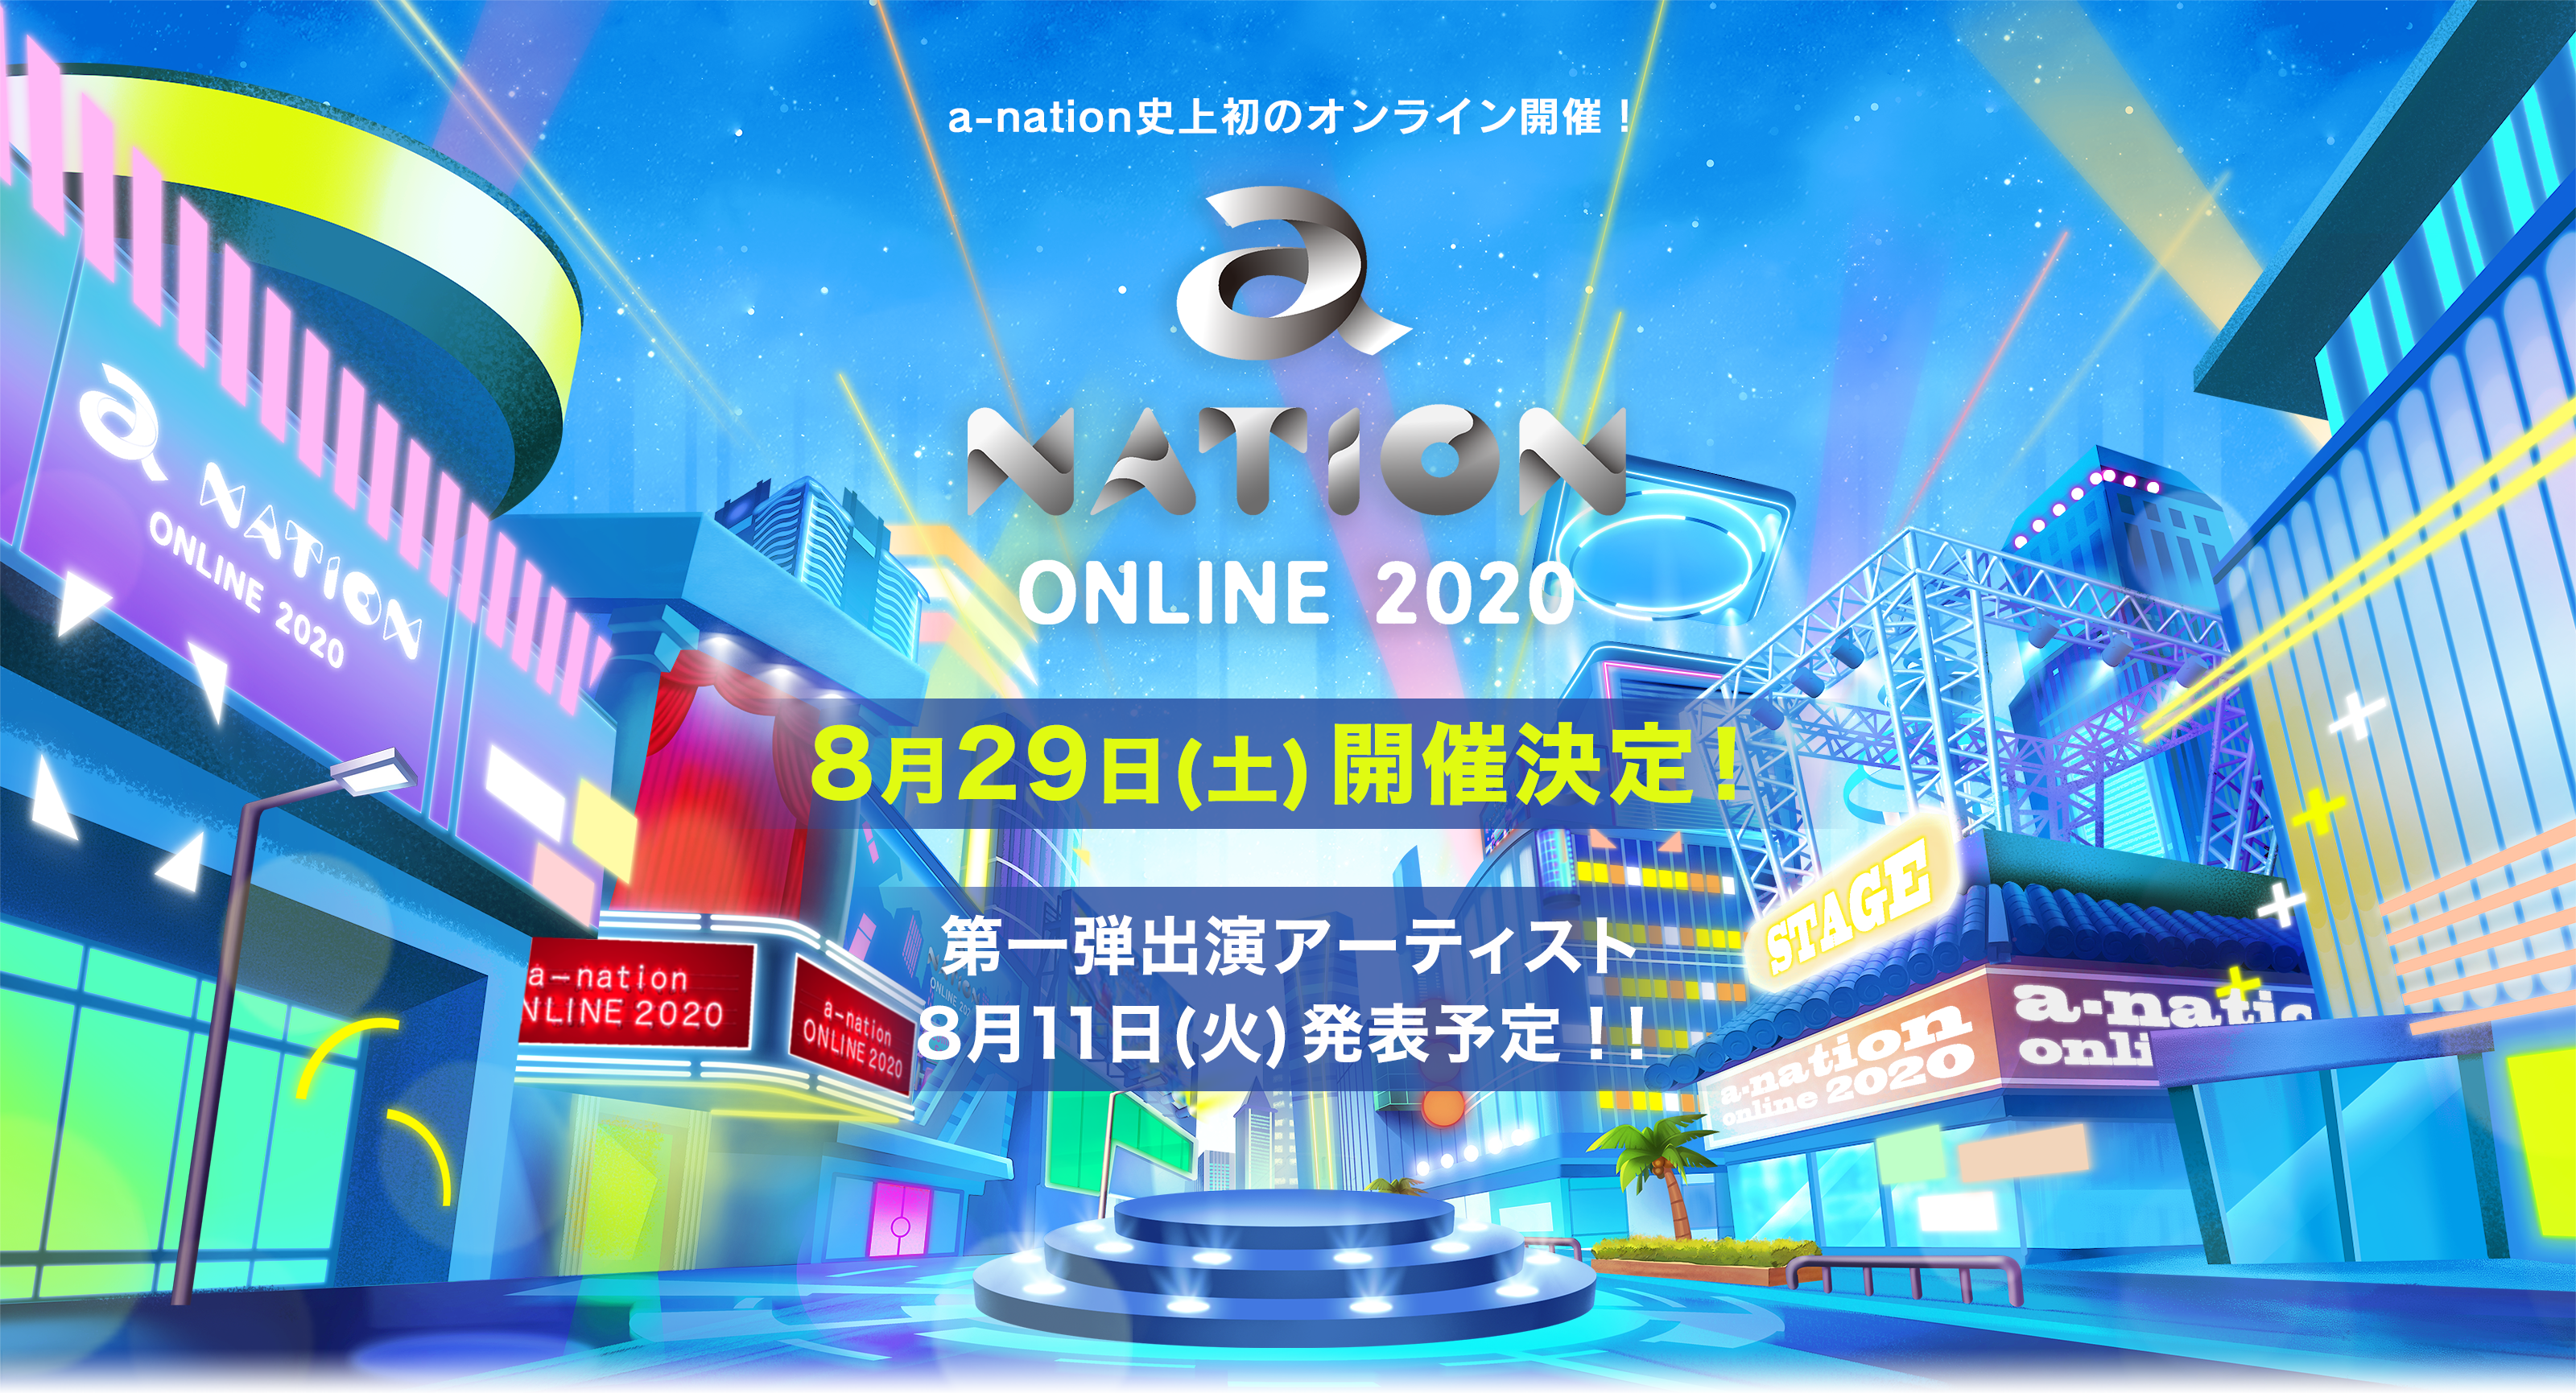 a-nation史上初! a-nation ONLINE 2020 8月末日開催決定! Coming Soon!